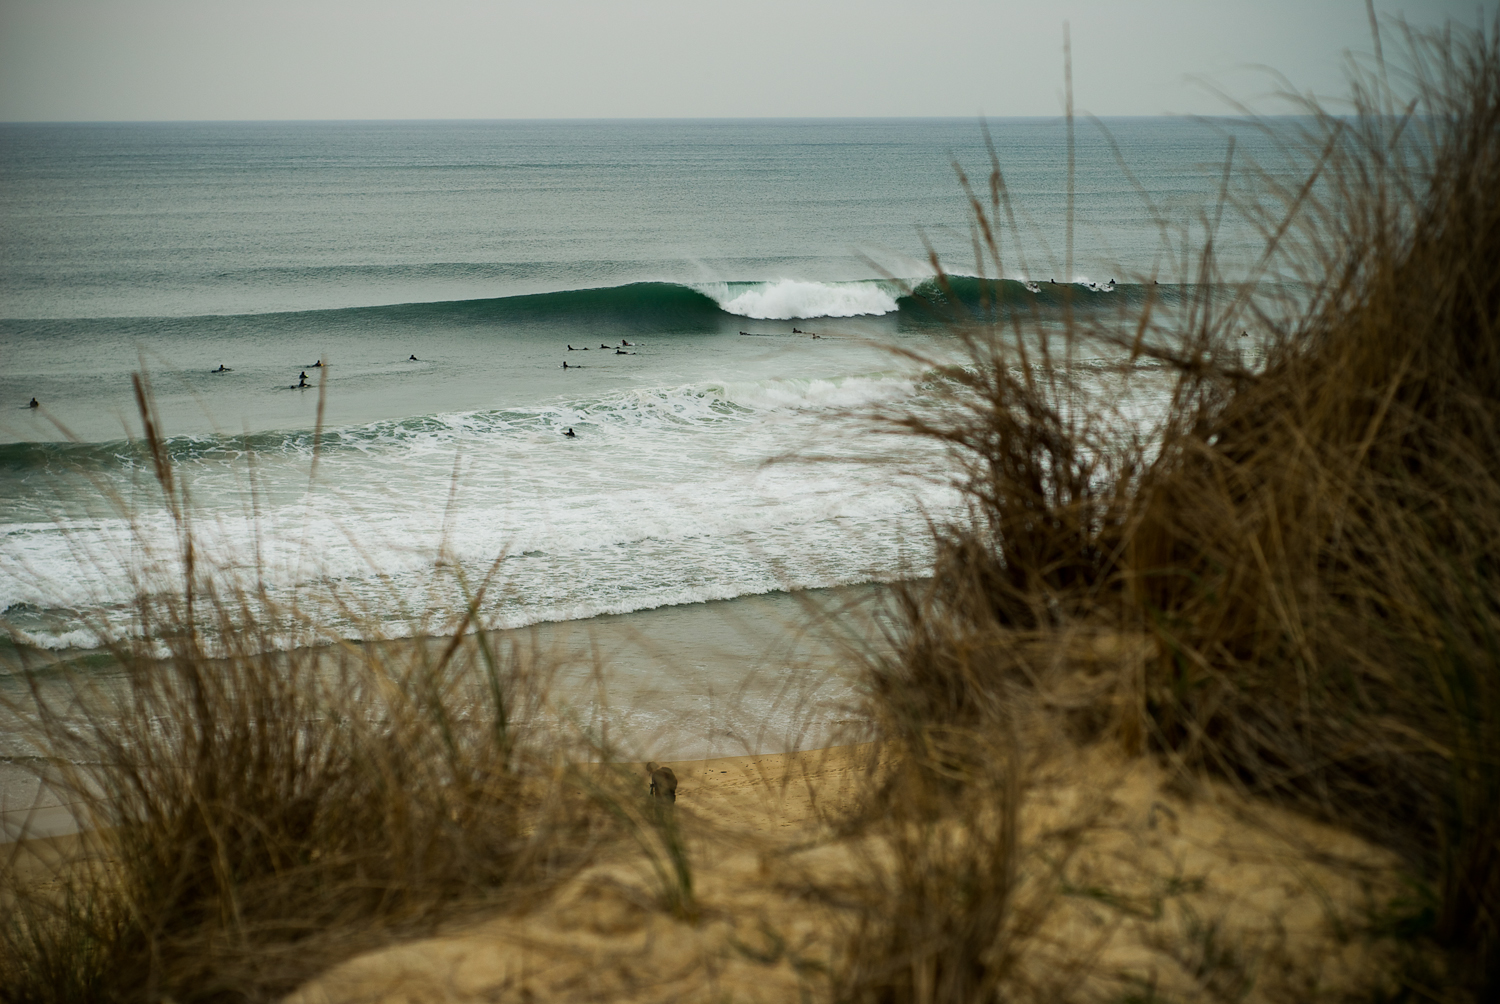 Southern France, one of the locations on the World Surf League's professional tour.